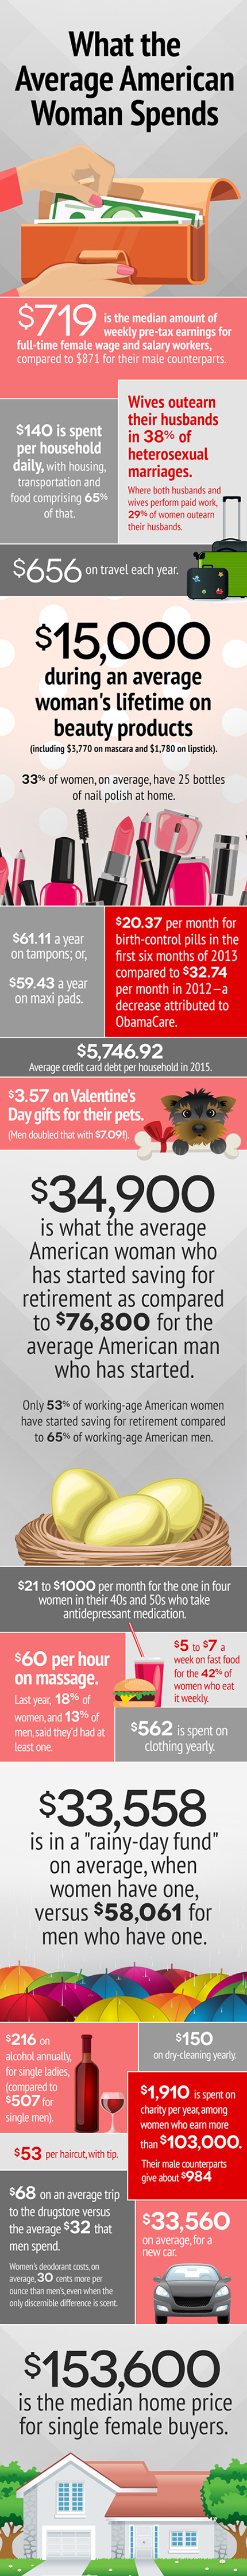 What is the average cost of clothes per month for a US female?